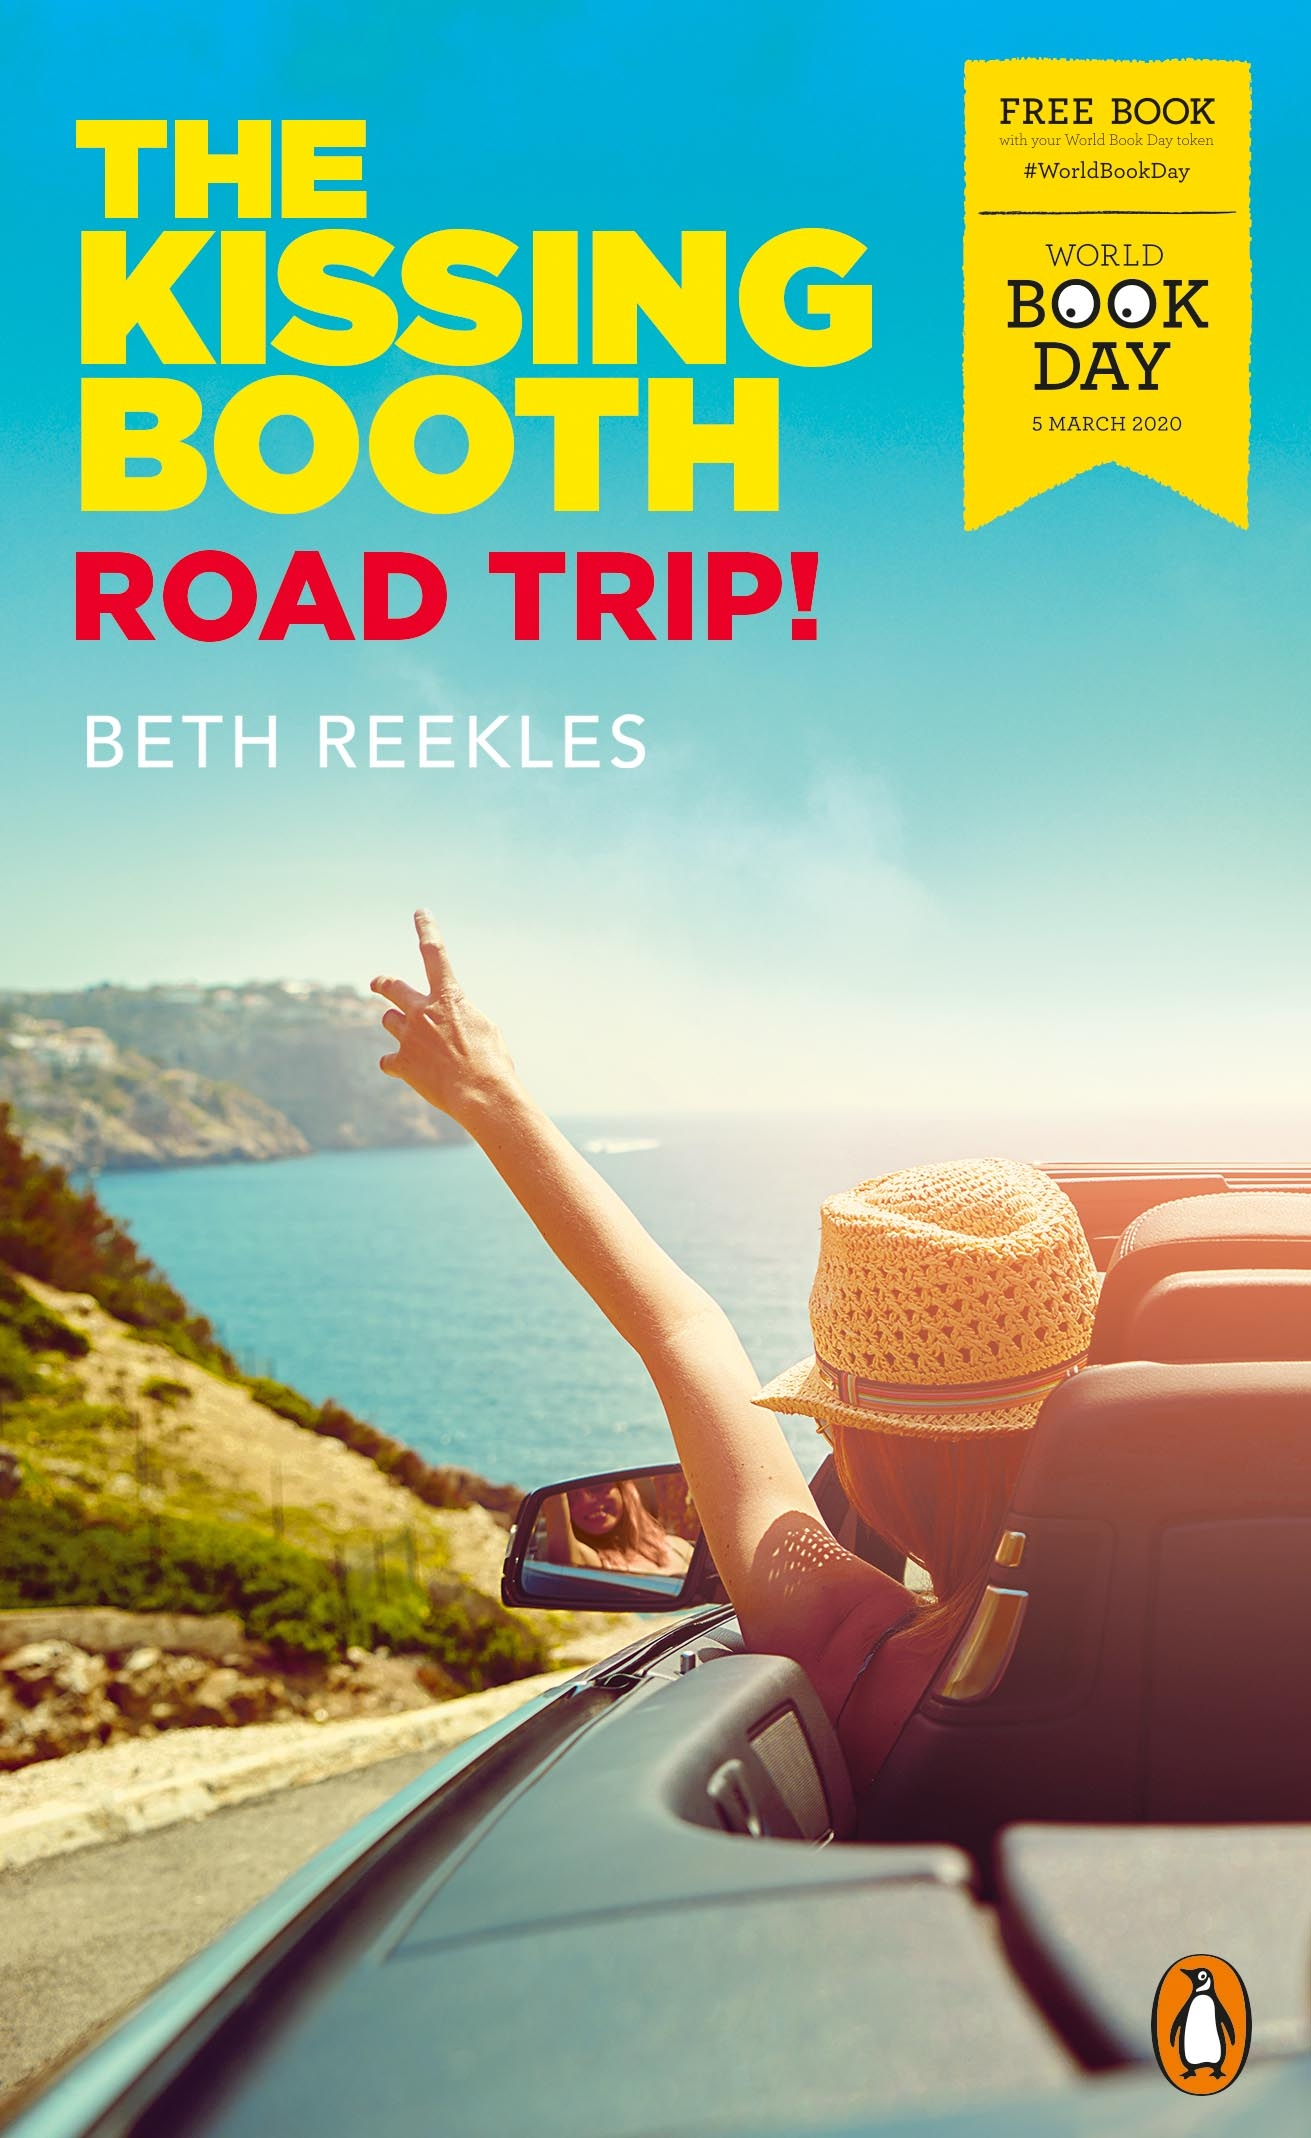 The Kissing Booth: Road Trip!